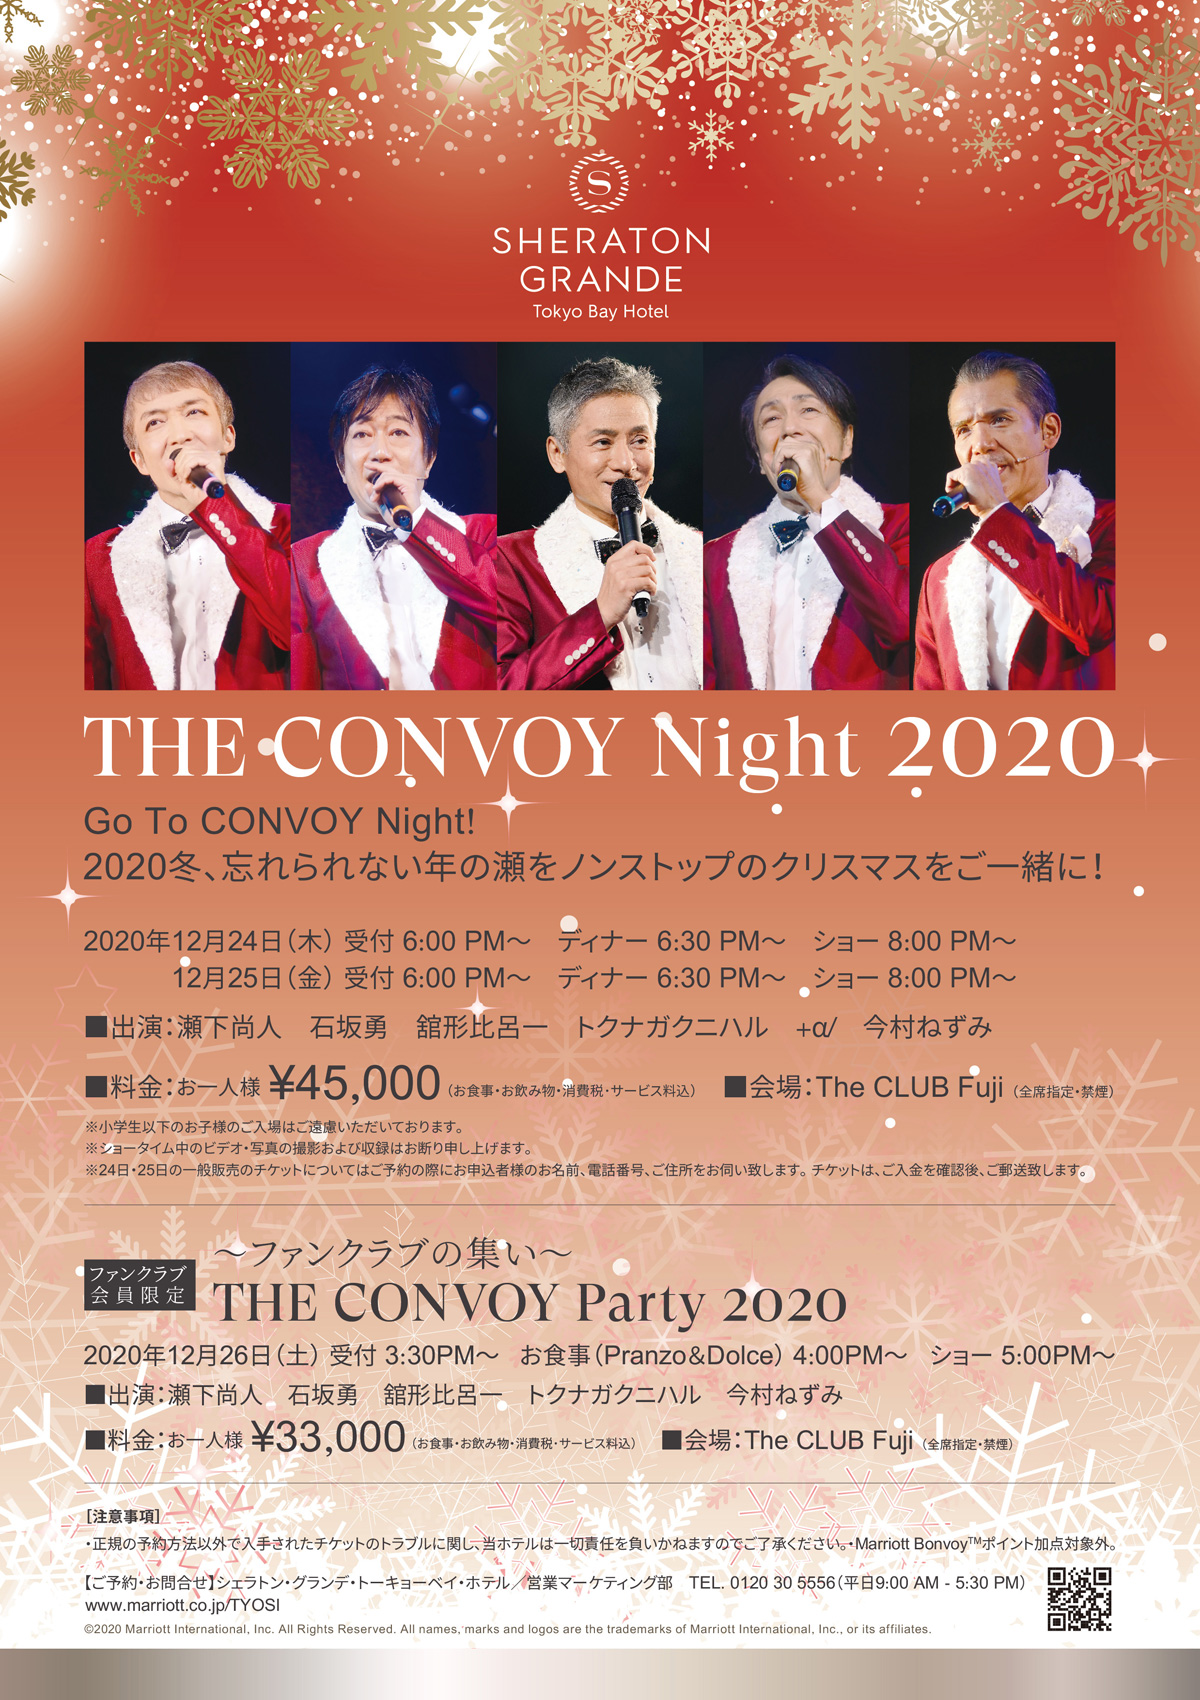 THE CONVOY Night 2020